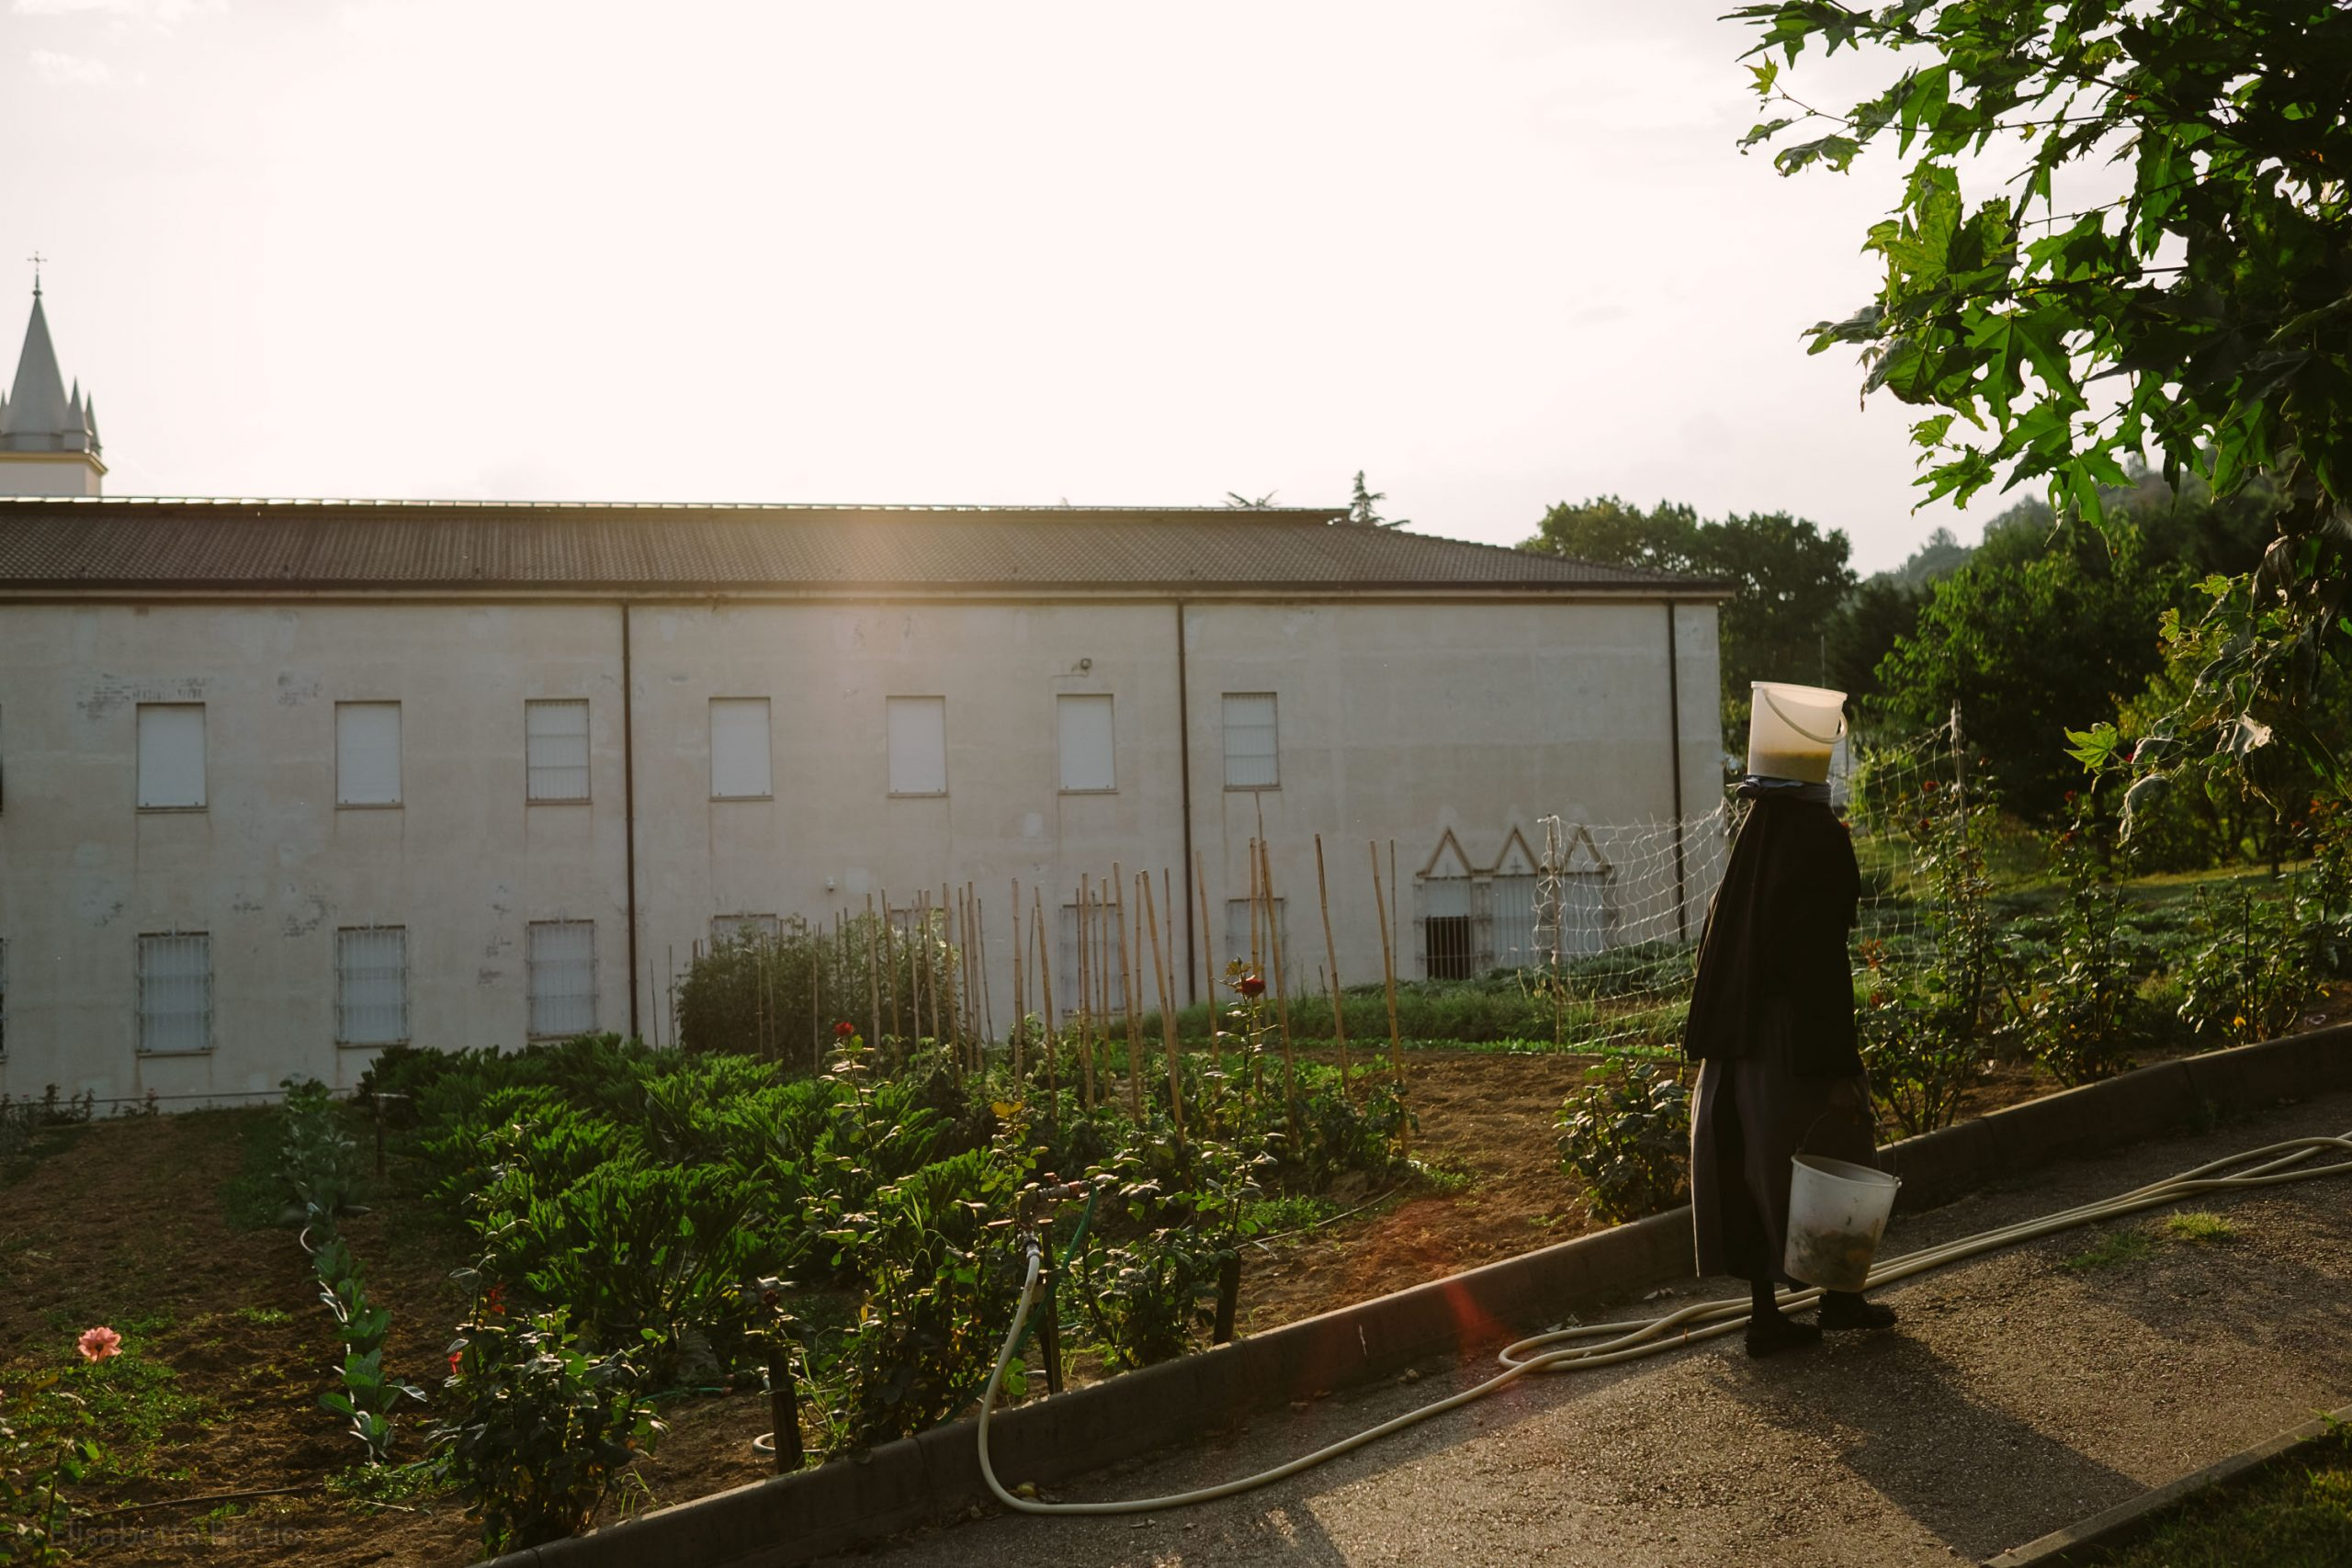 elisabetta riccio - from the clausus project, a nun while working walks at sunset and brings food to the animals